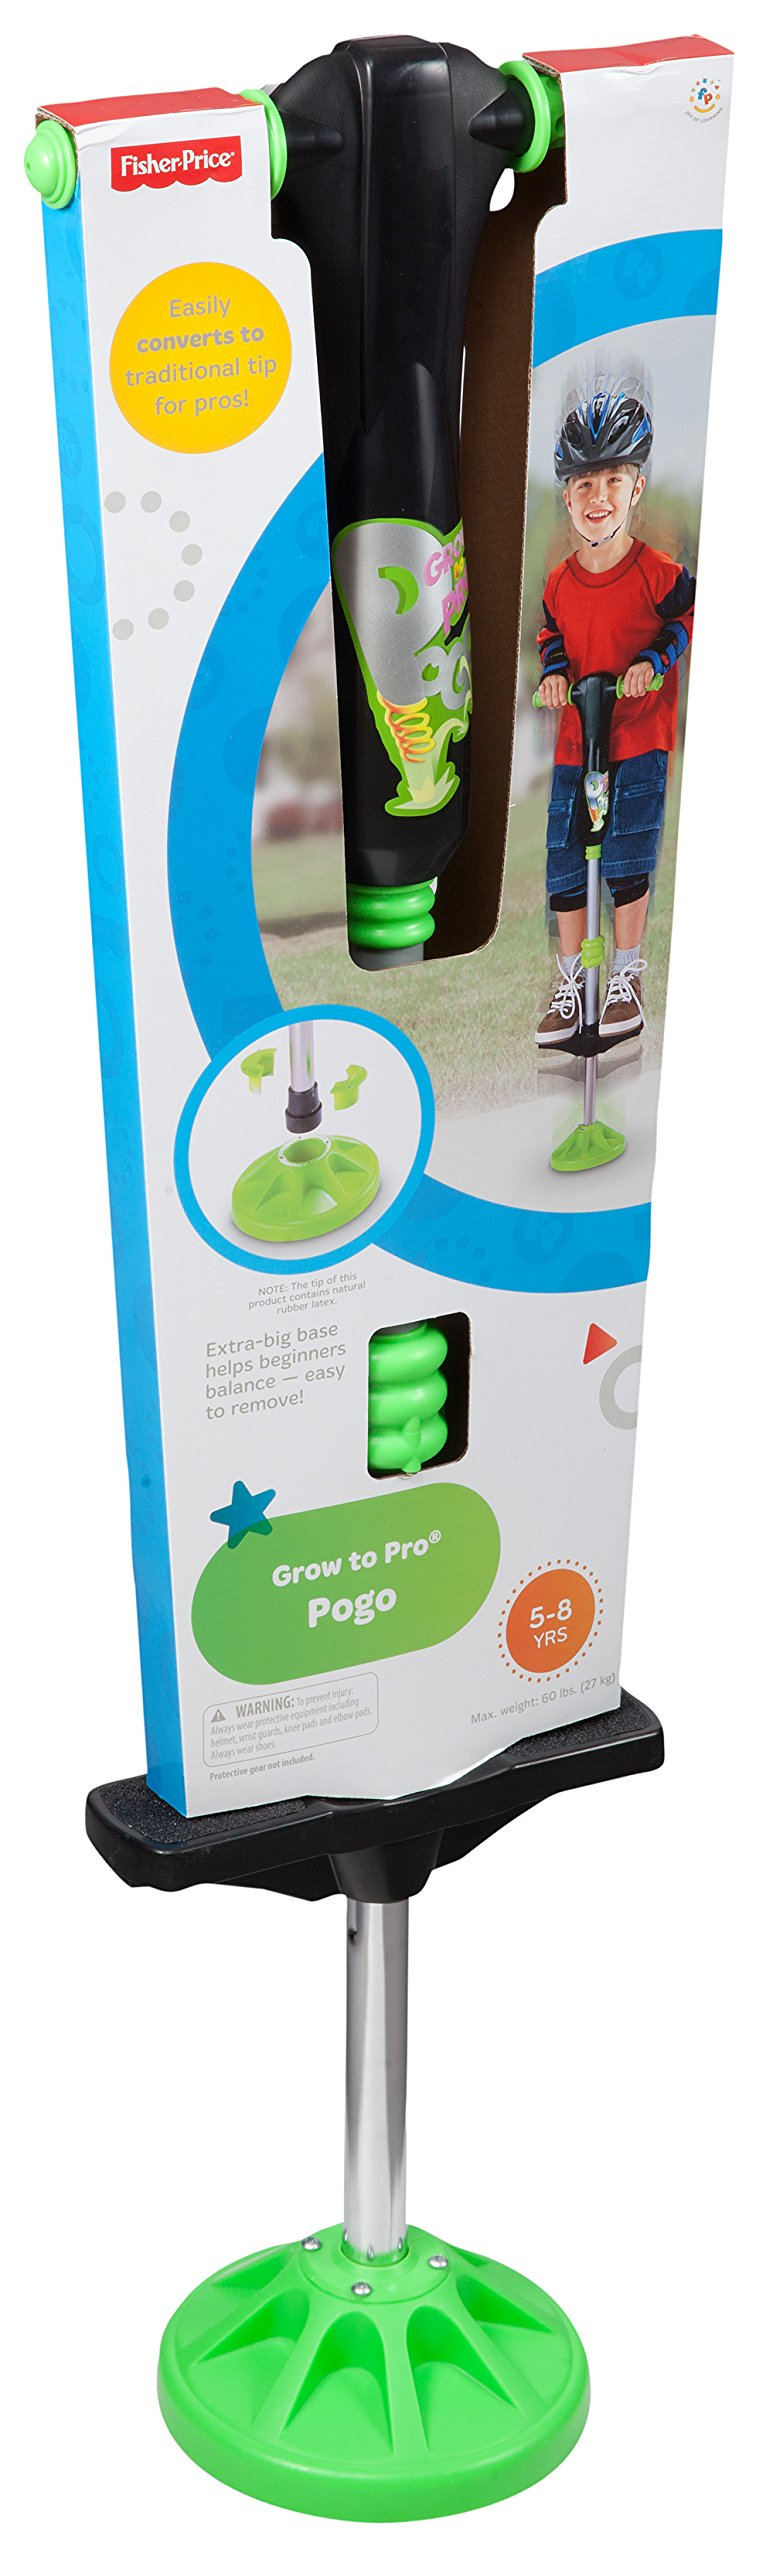 Fisher-Price Grow-to-Pro Pogo by Fisher-Price